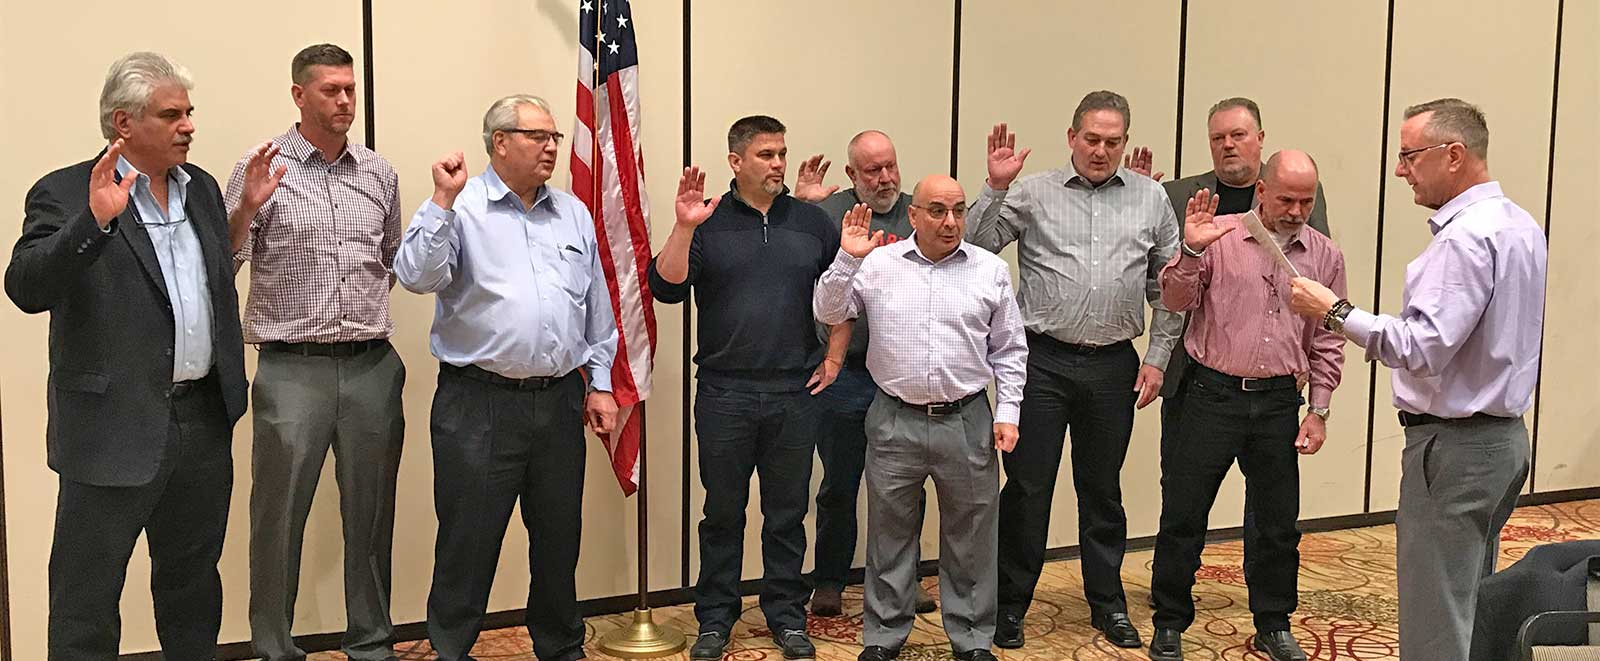 Tri-State District Council Board Swearing In